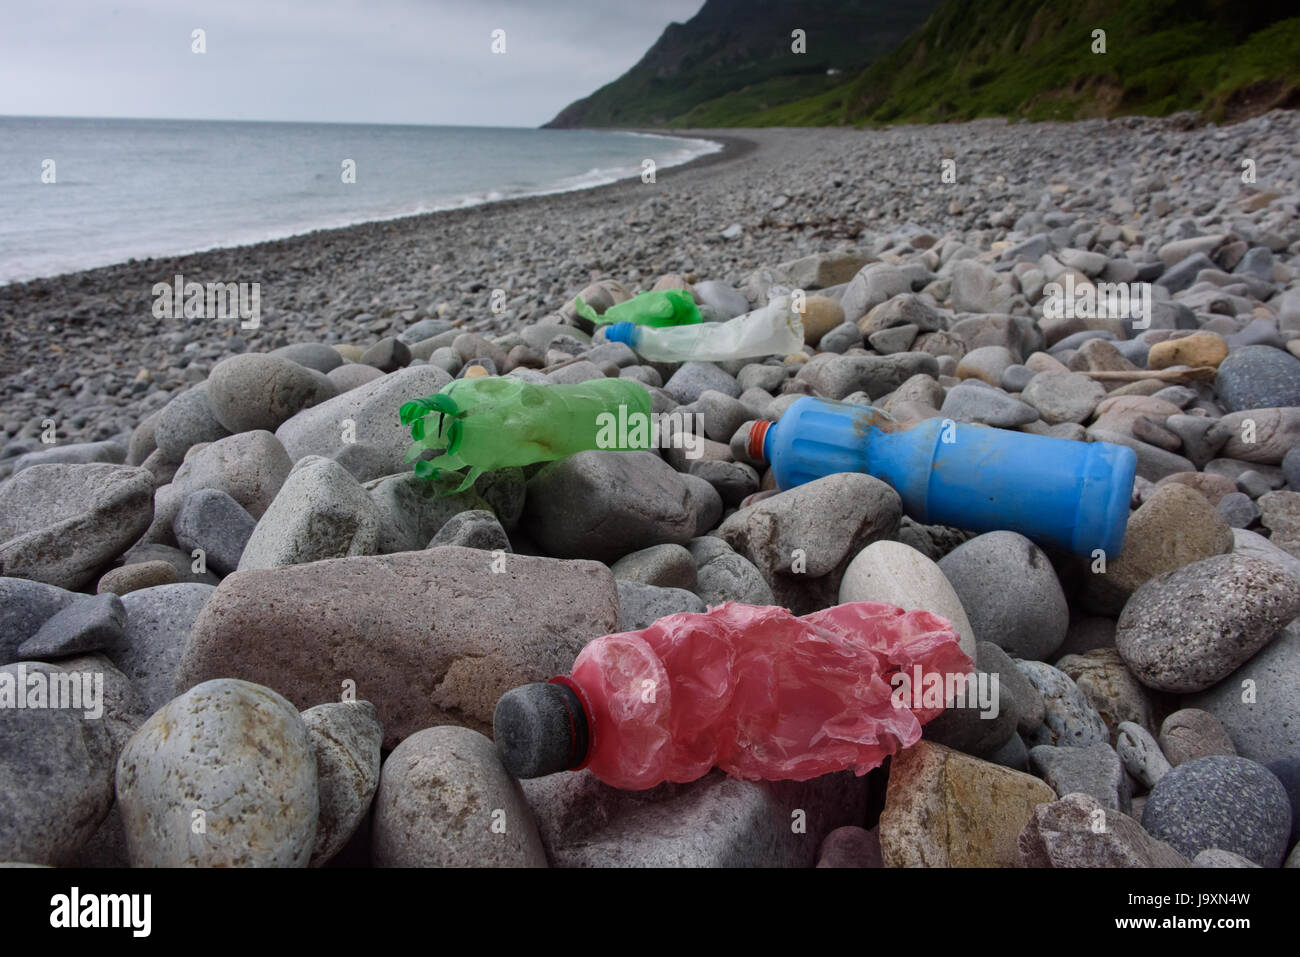 Plastic waste on beach in North Wales, UK - Stock Image